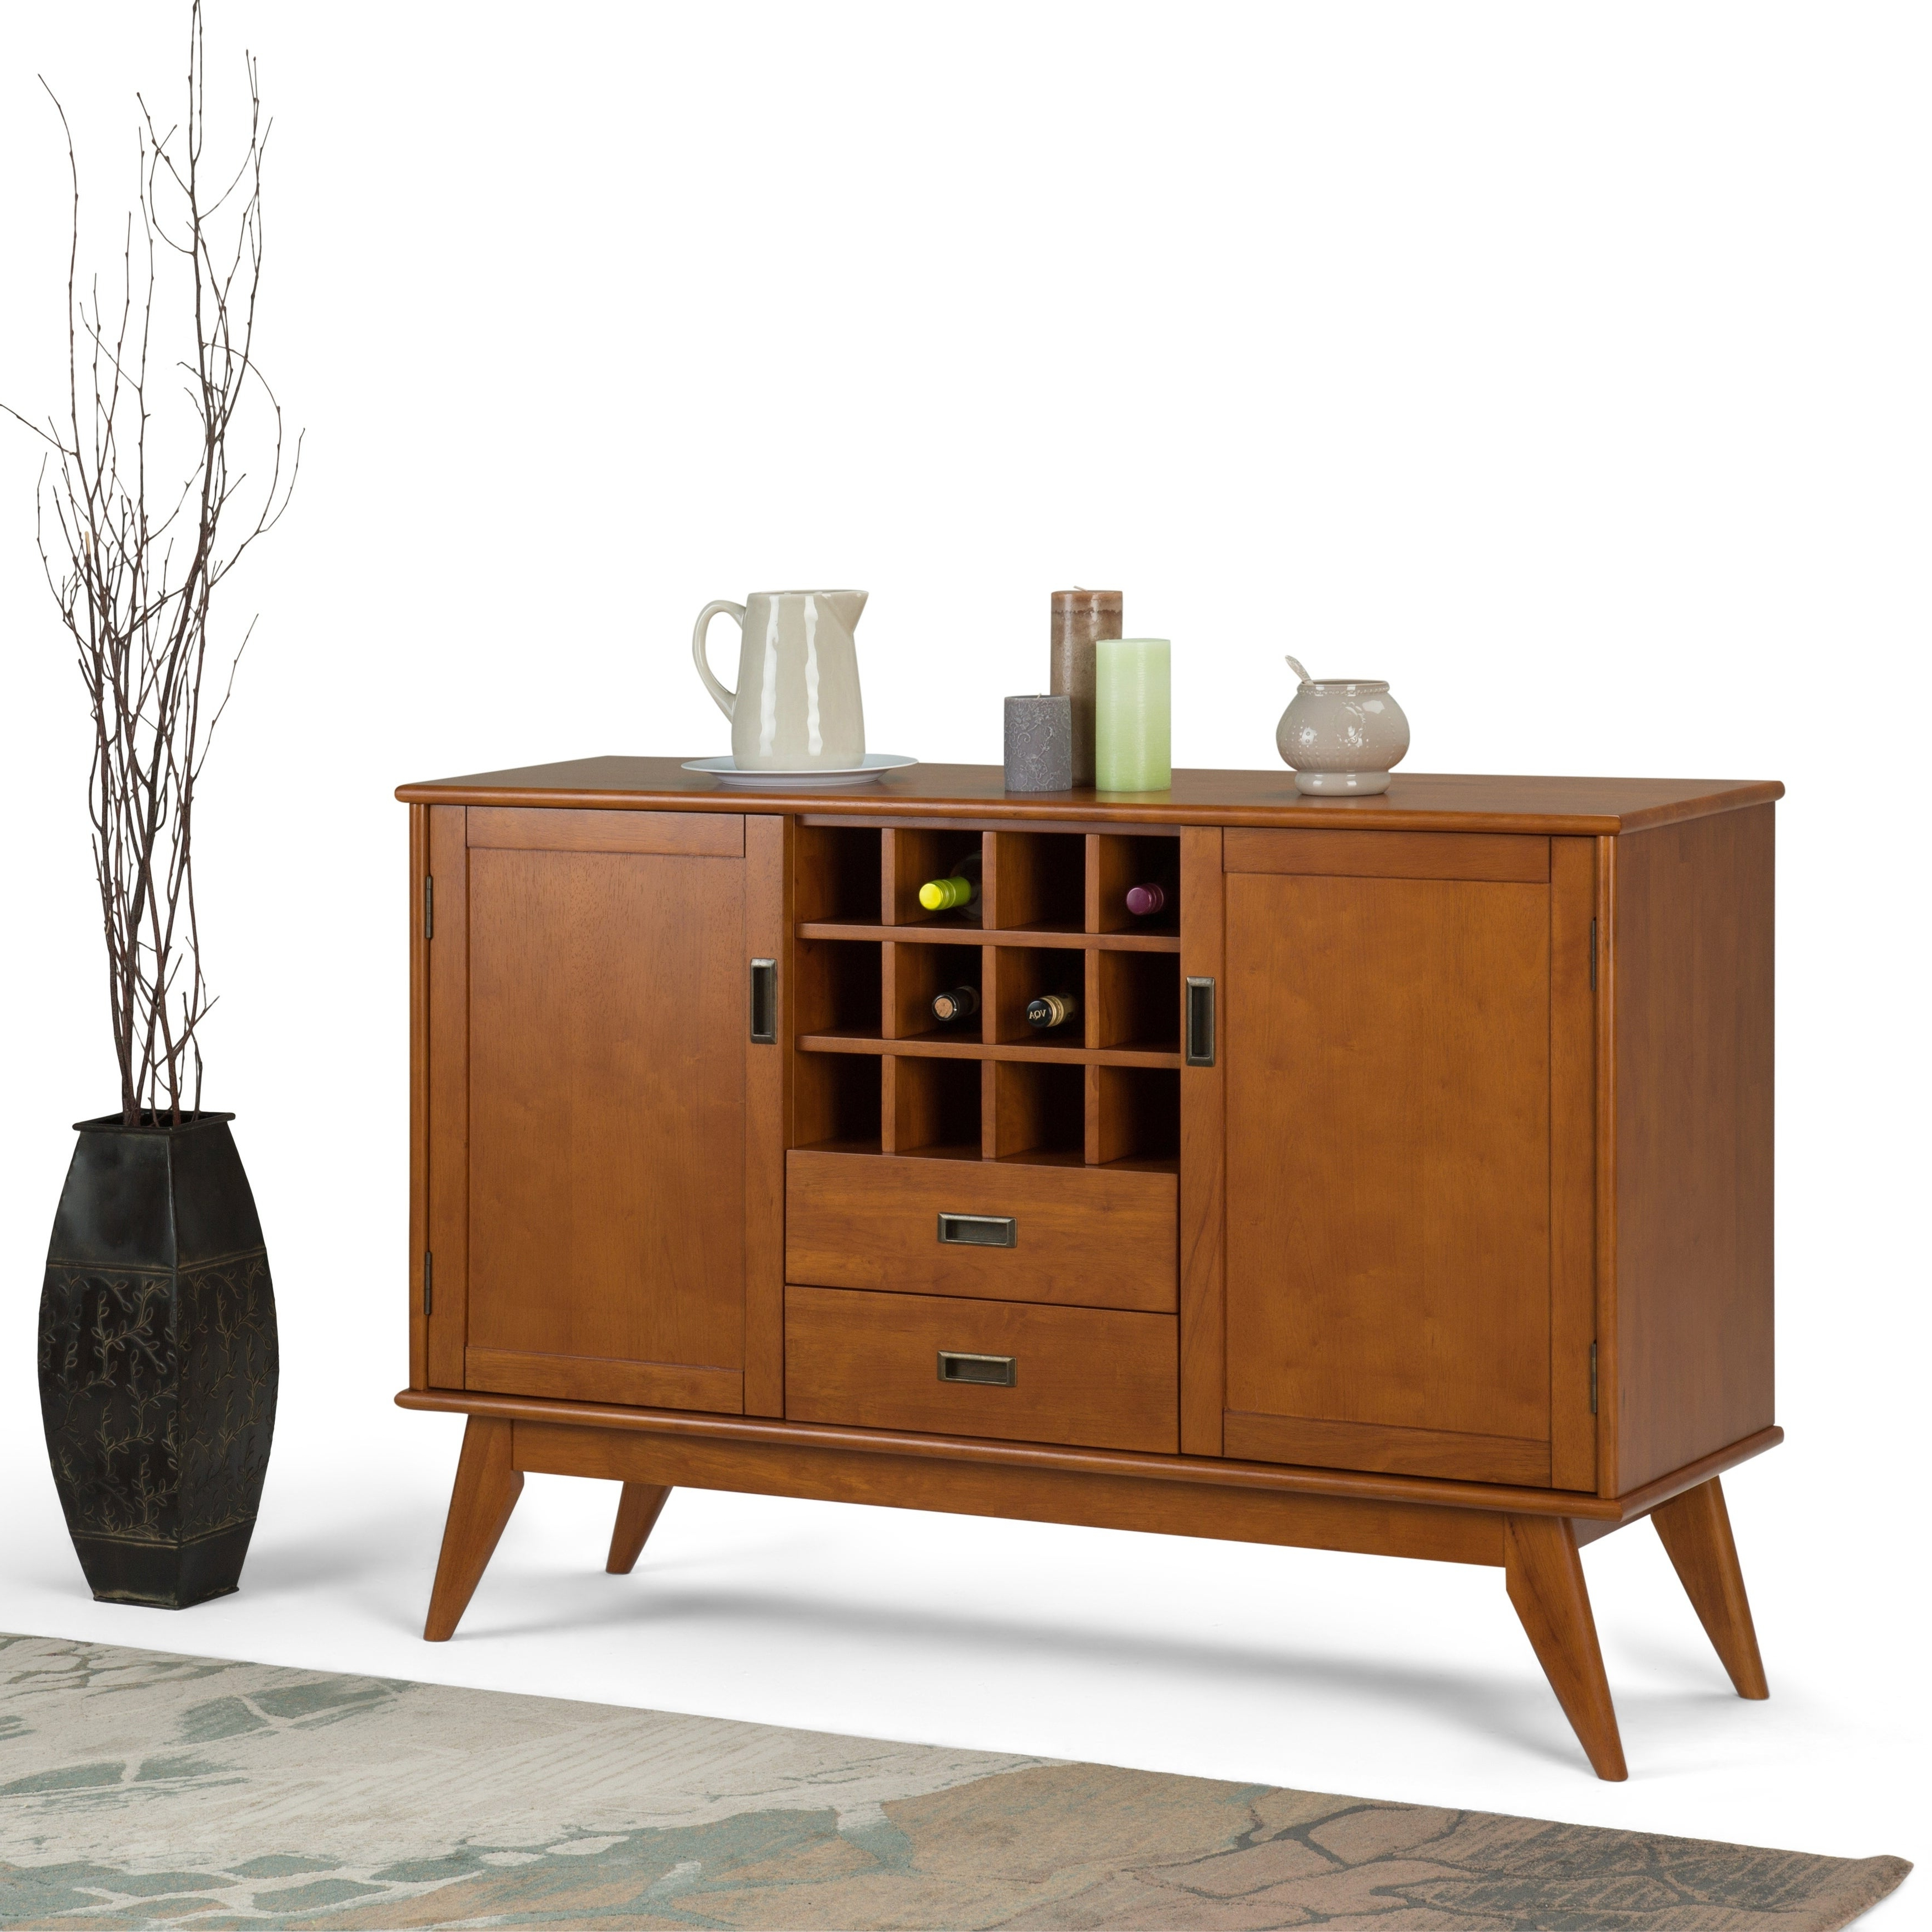 Wyndenhall Tierney Solid Hardwood 54 Inch Wide Mid Century Modern Sideboard  Buffet And Winerack With Mid Century Retro Modern Oak And Espresso Wood Buffets (View 20 of 20)